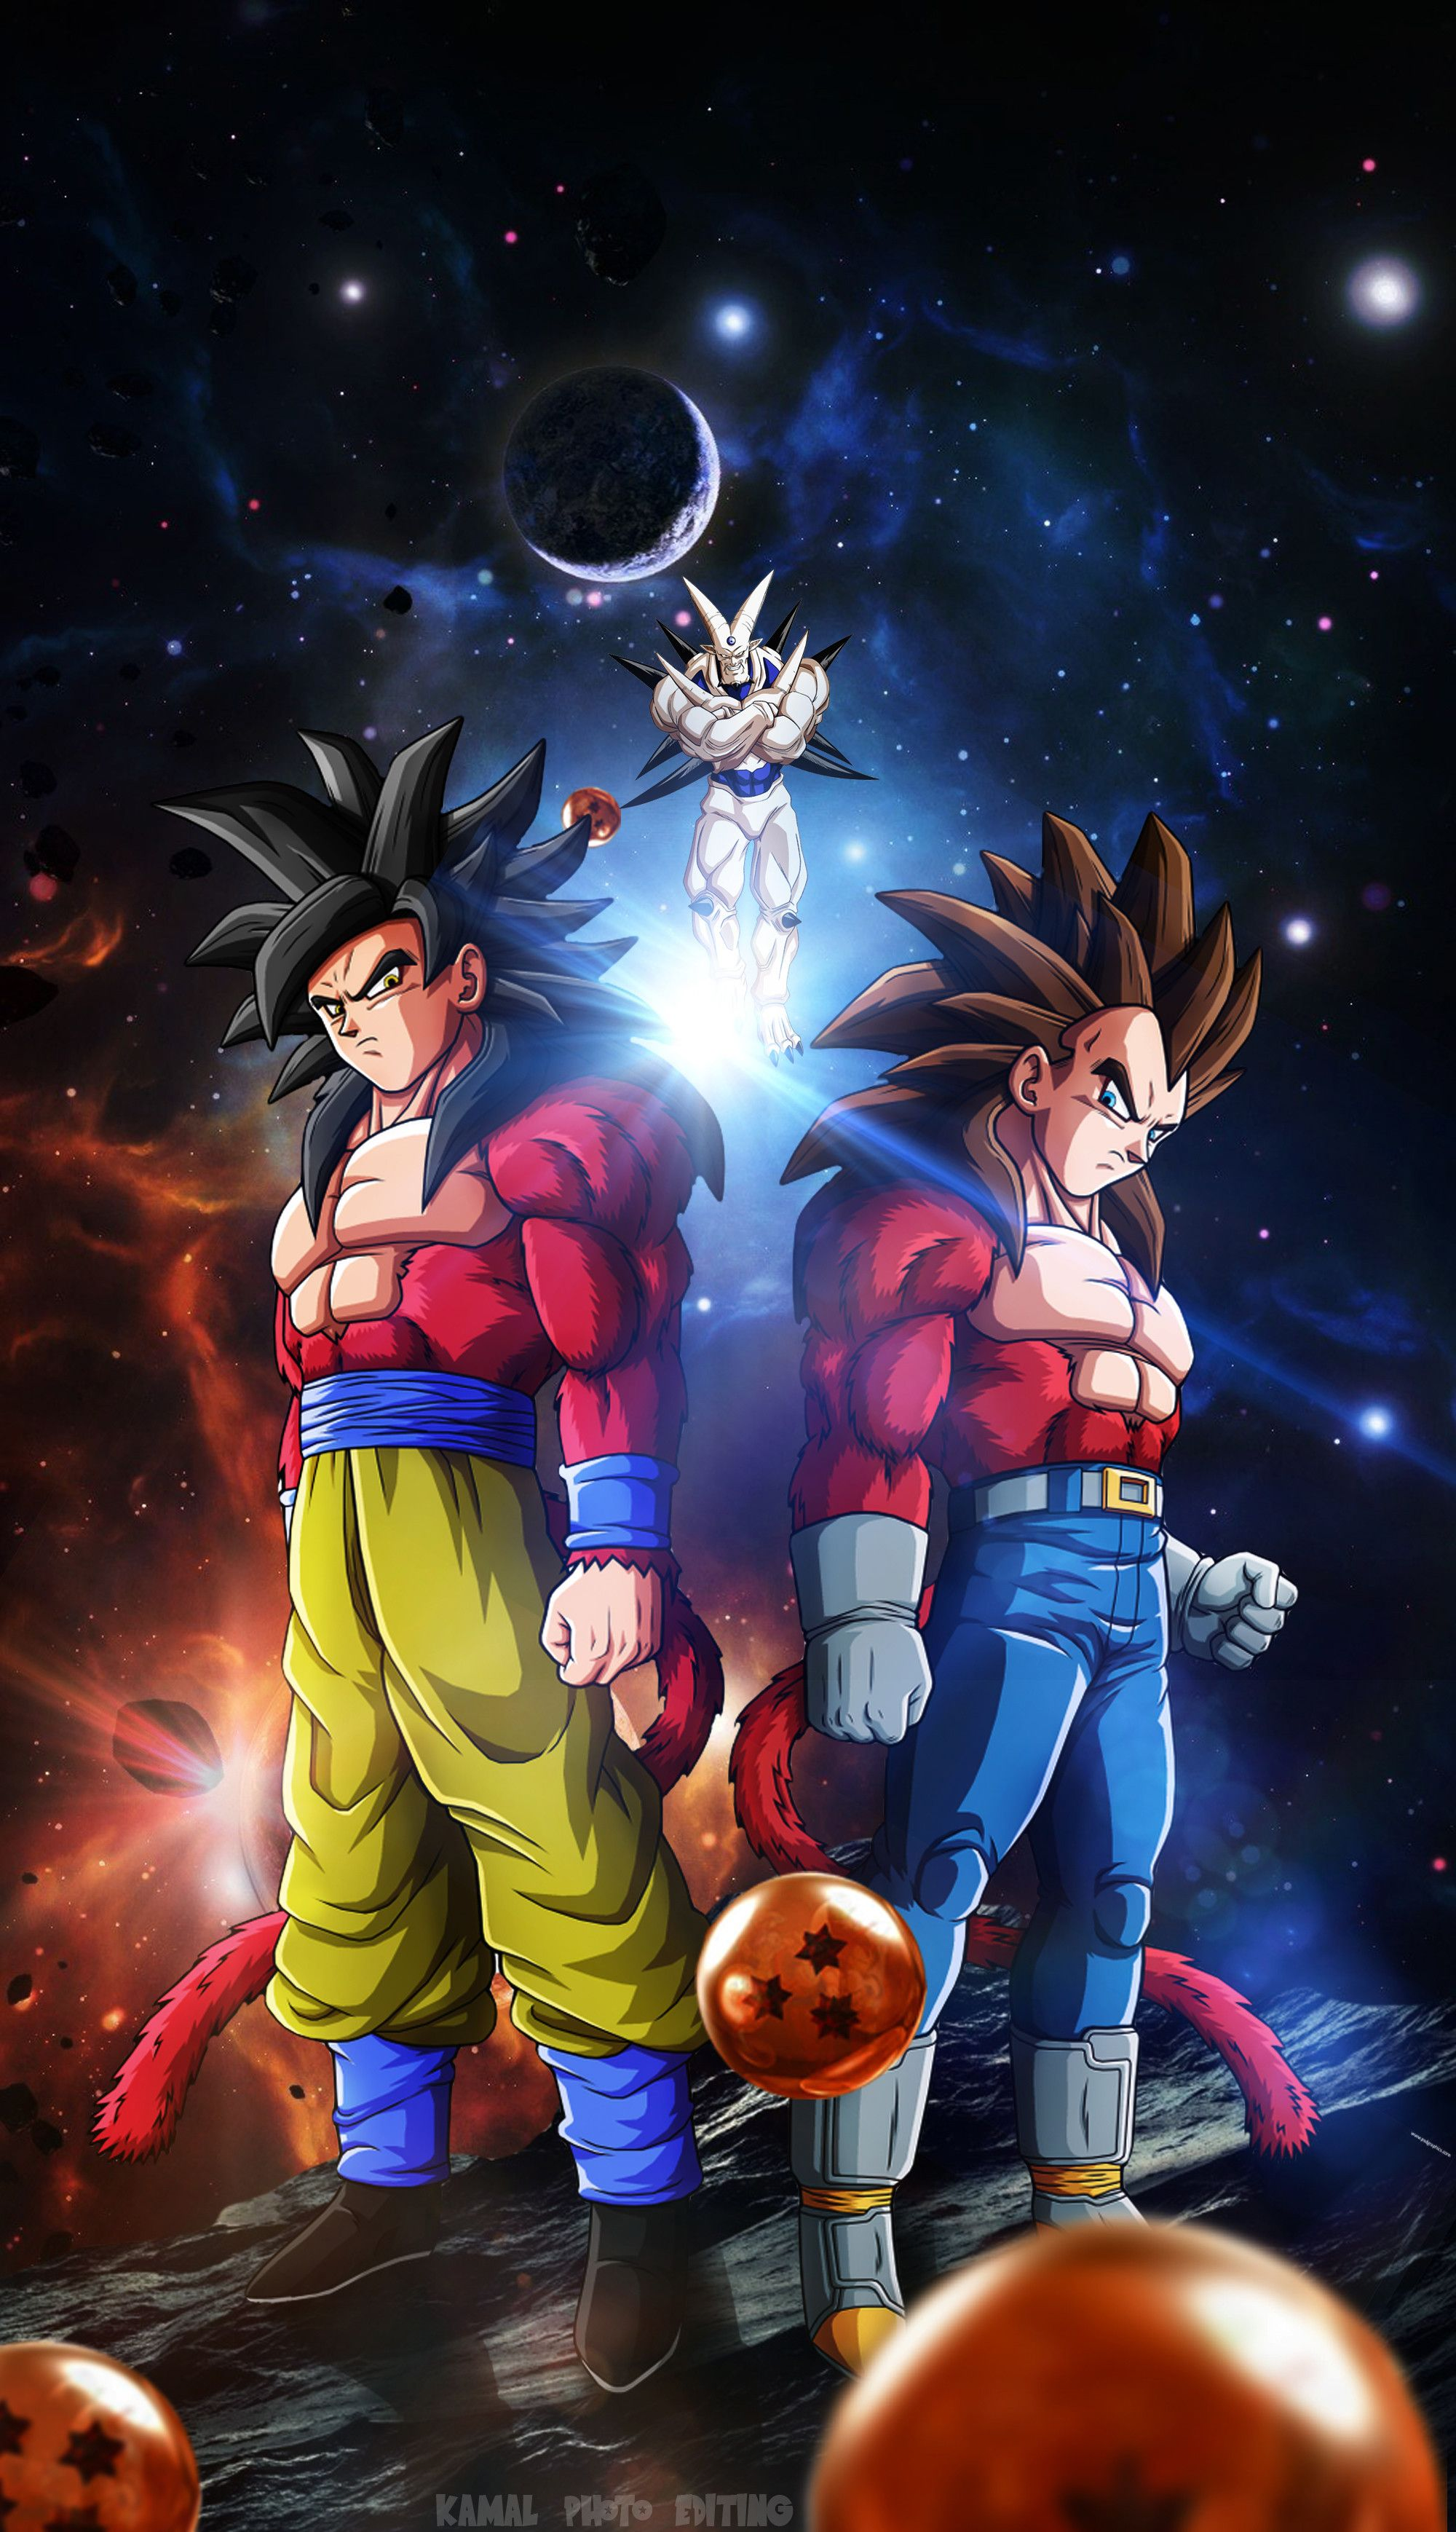 DBZ Supreme Phone Wallpapers - Top Free DBZ Supreme Phone Backgrounds - WallpaperAccess